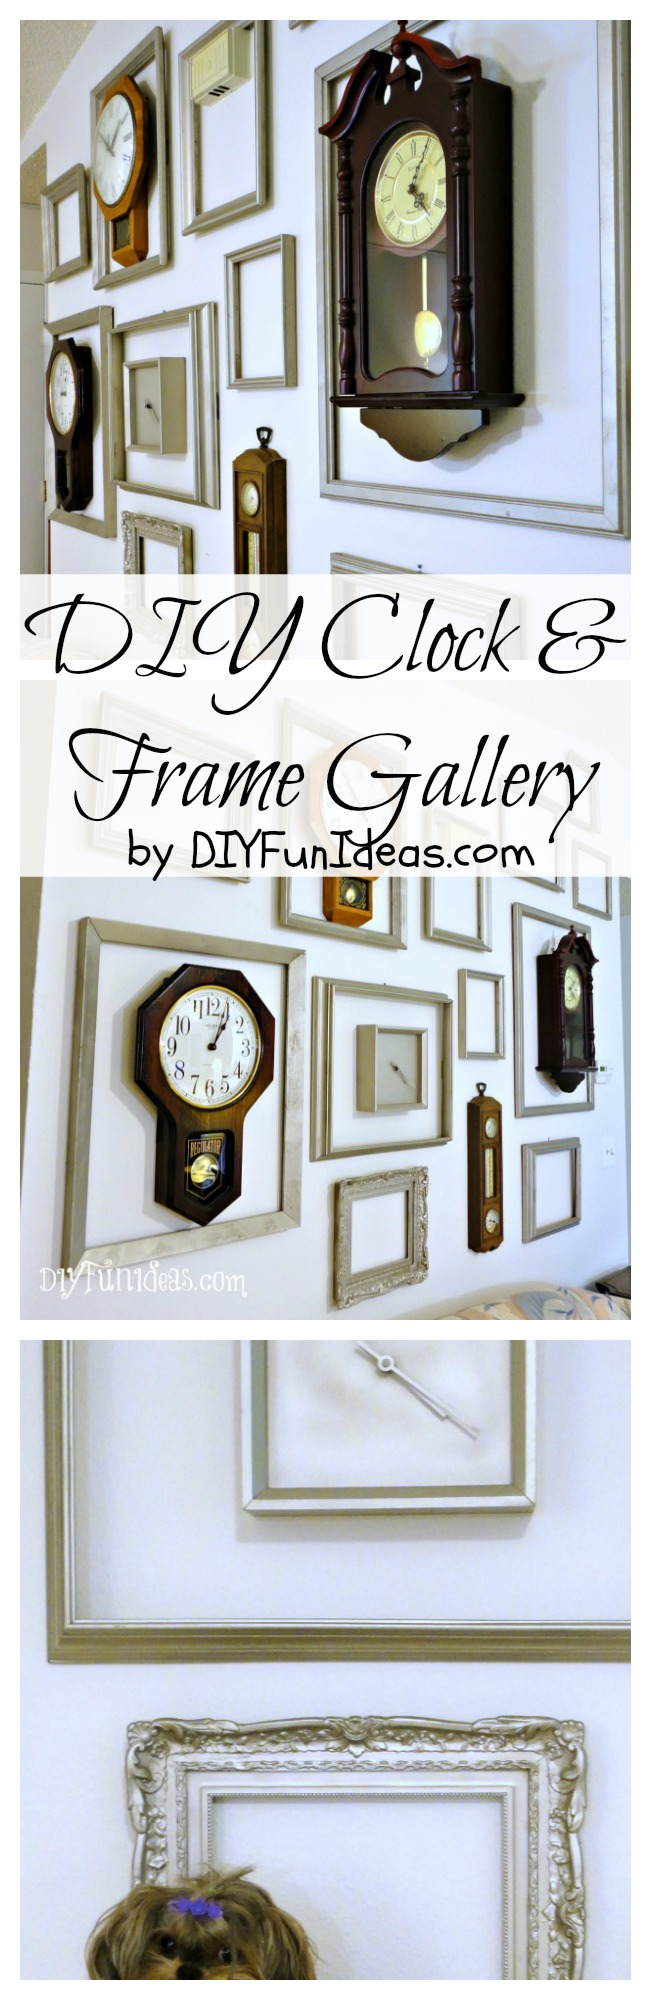 diy clock and frame gallery - Do It Yourself Picture Frames